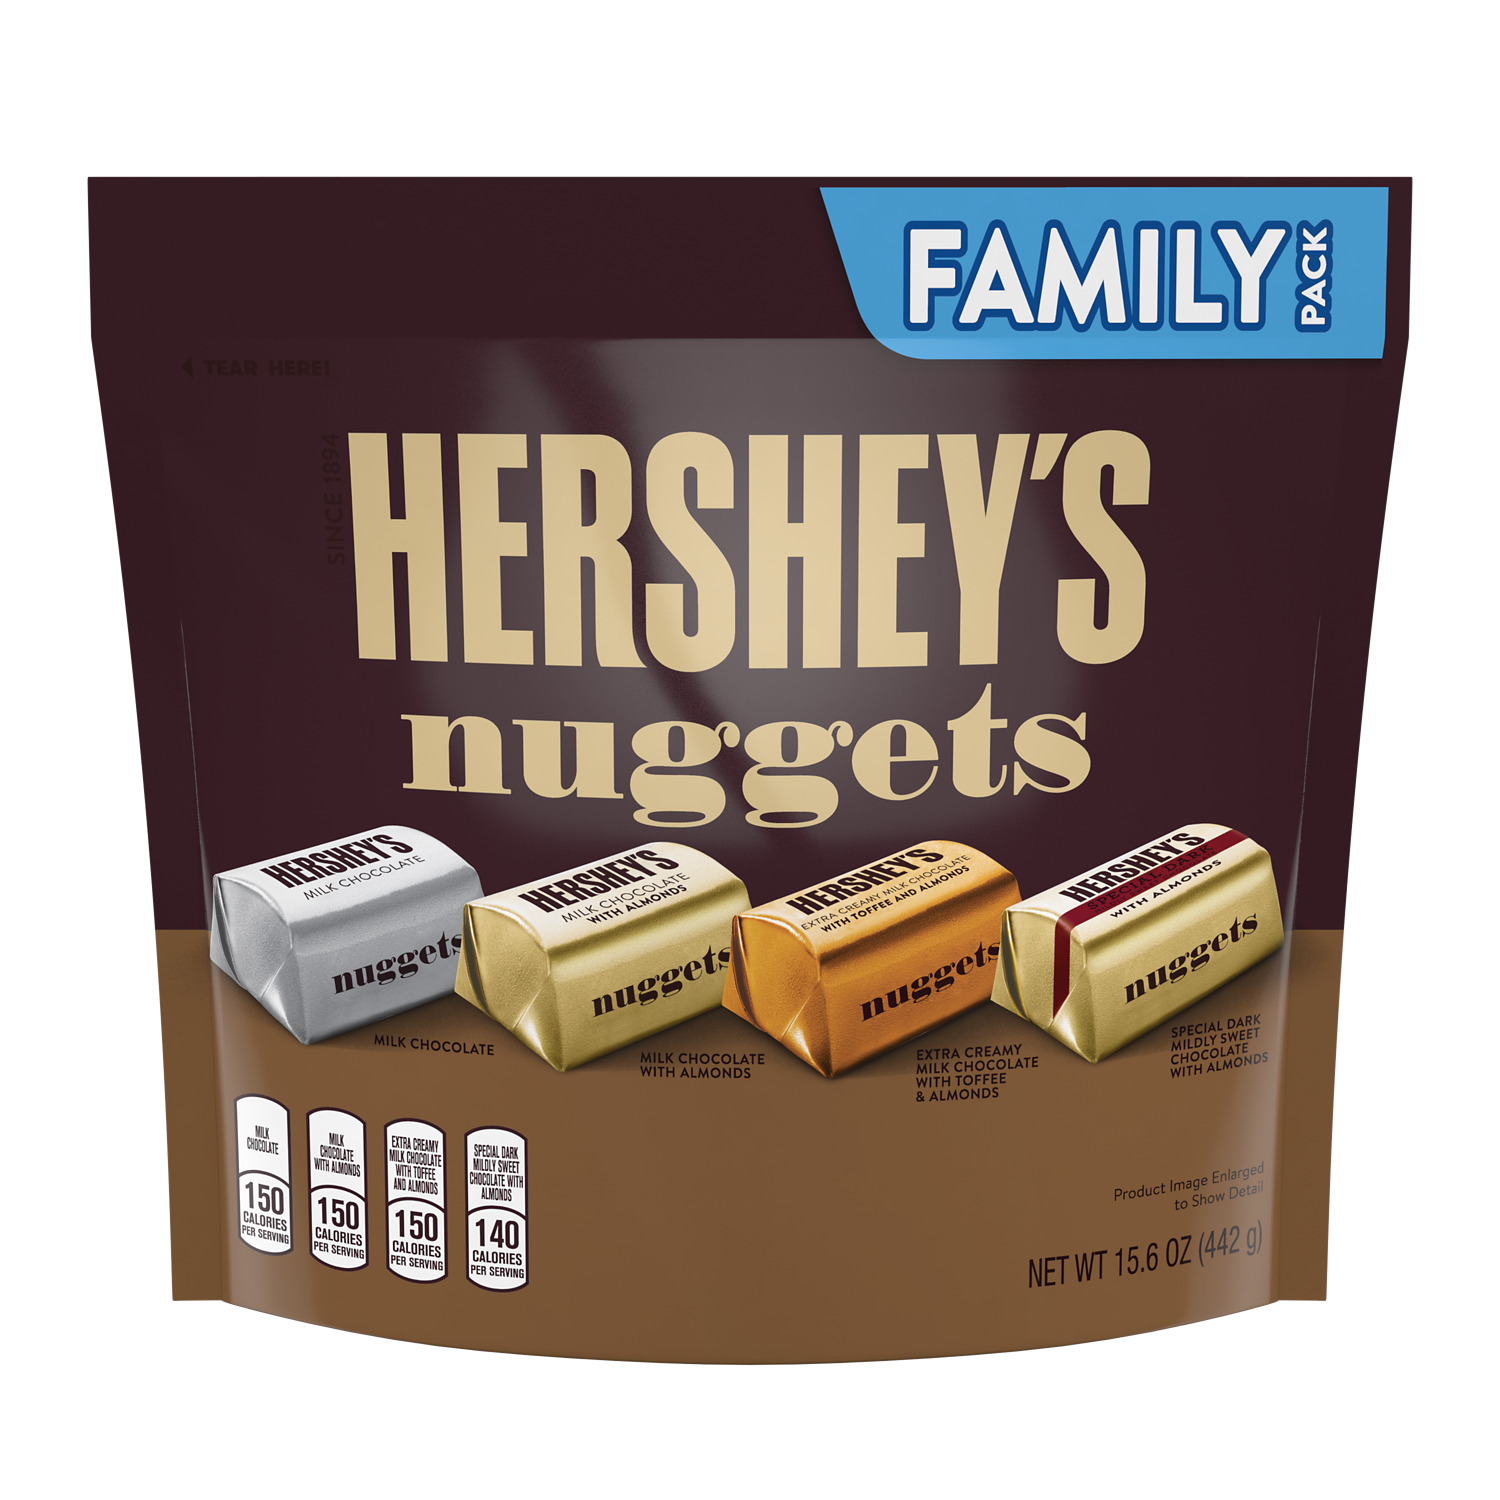 HERSHEY'S NUGGETS Assortment, 15.6 oz pack - Front of Package